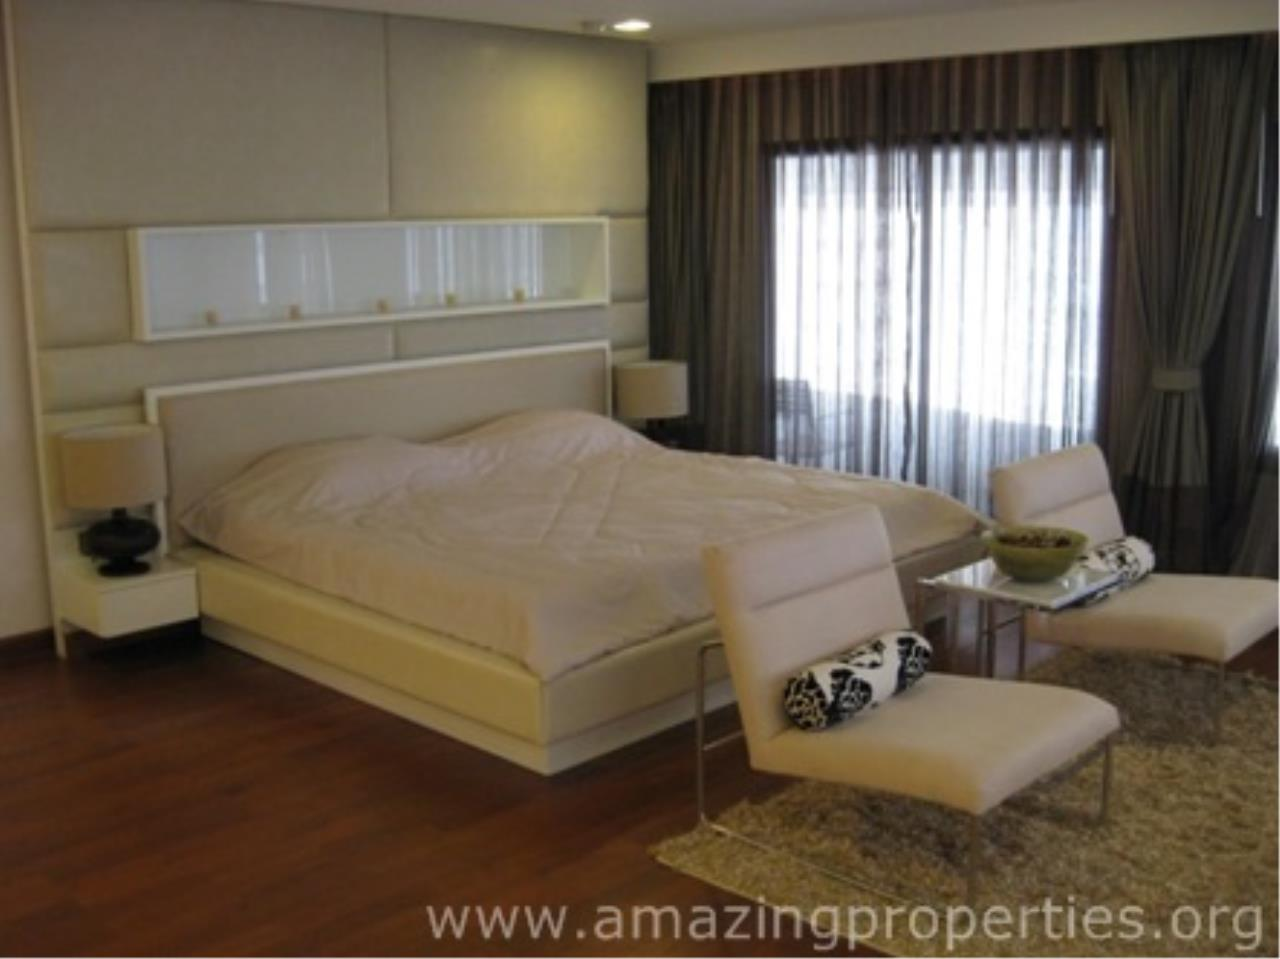 Amazing Properties Agency's 3 bedrooms Apartment for rent/sale 2